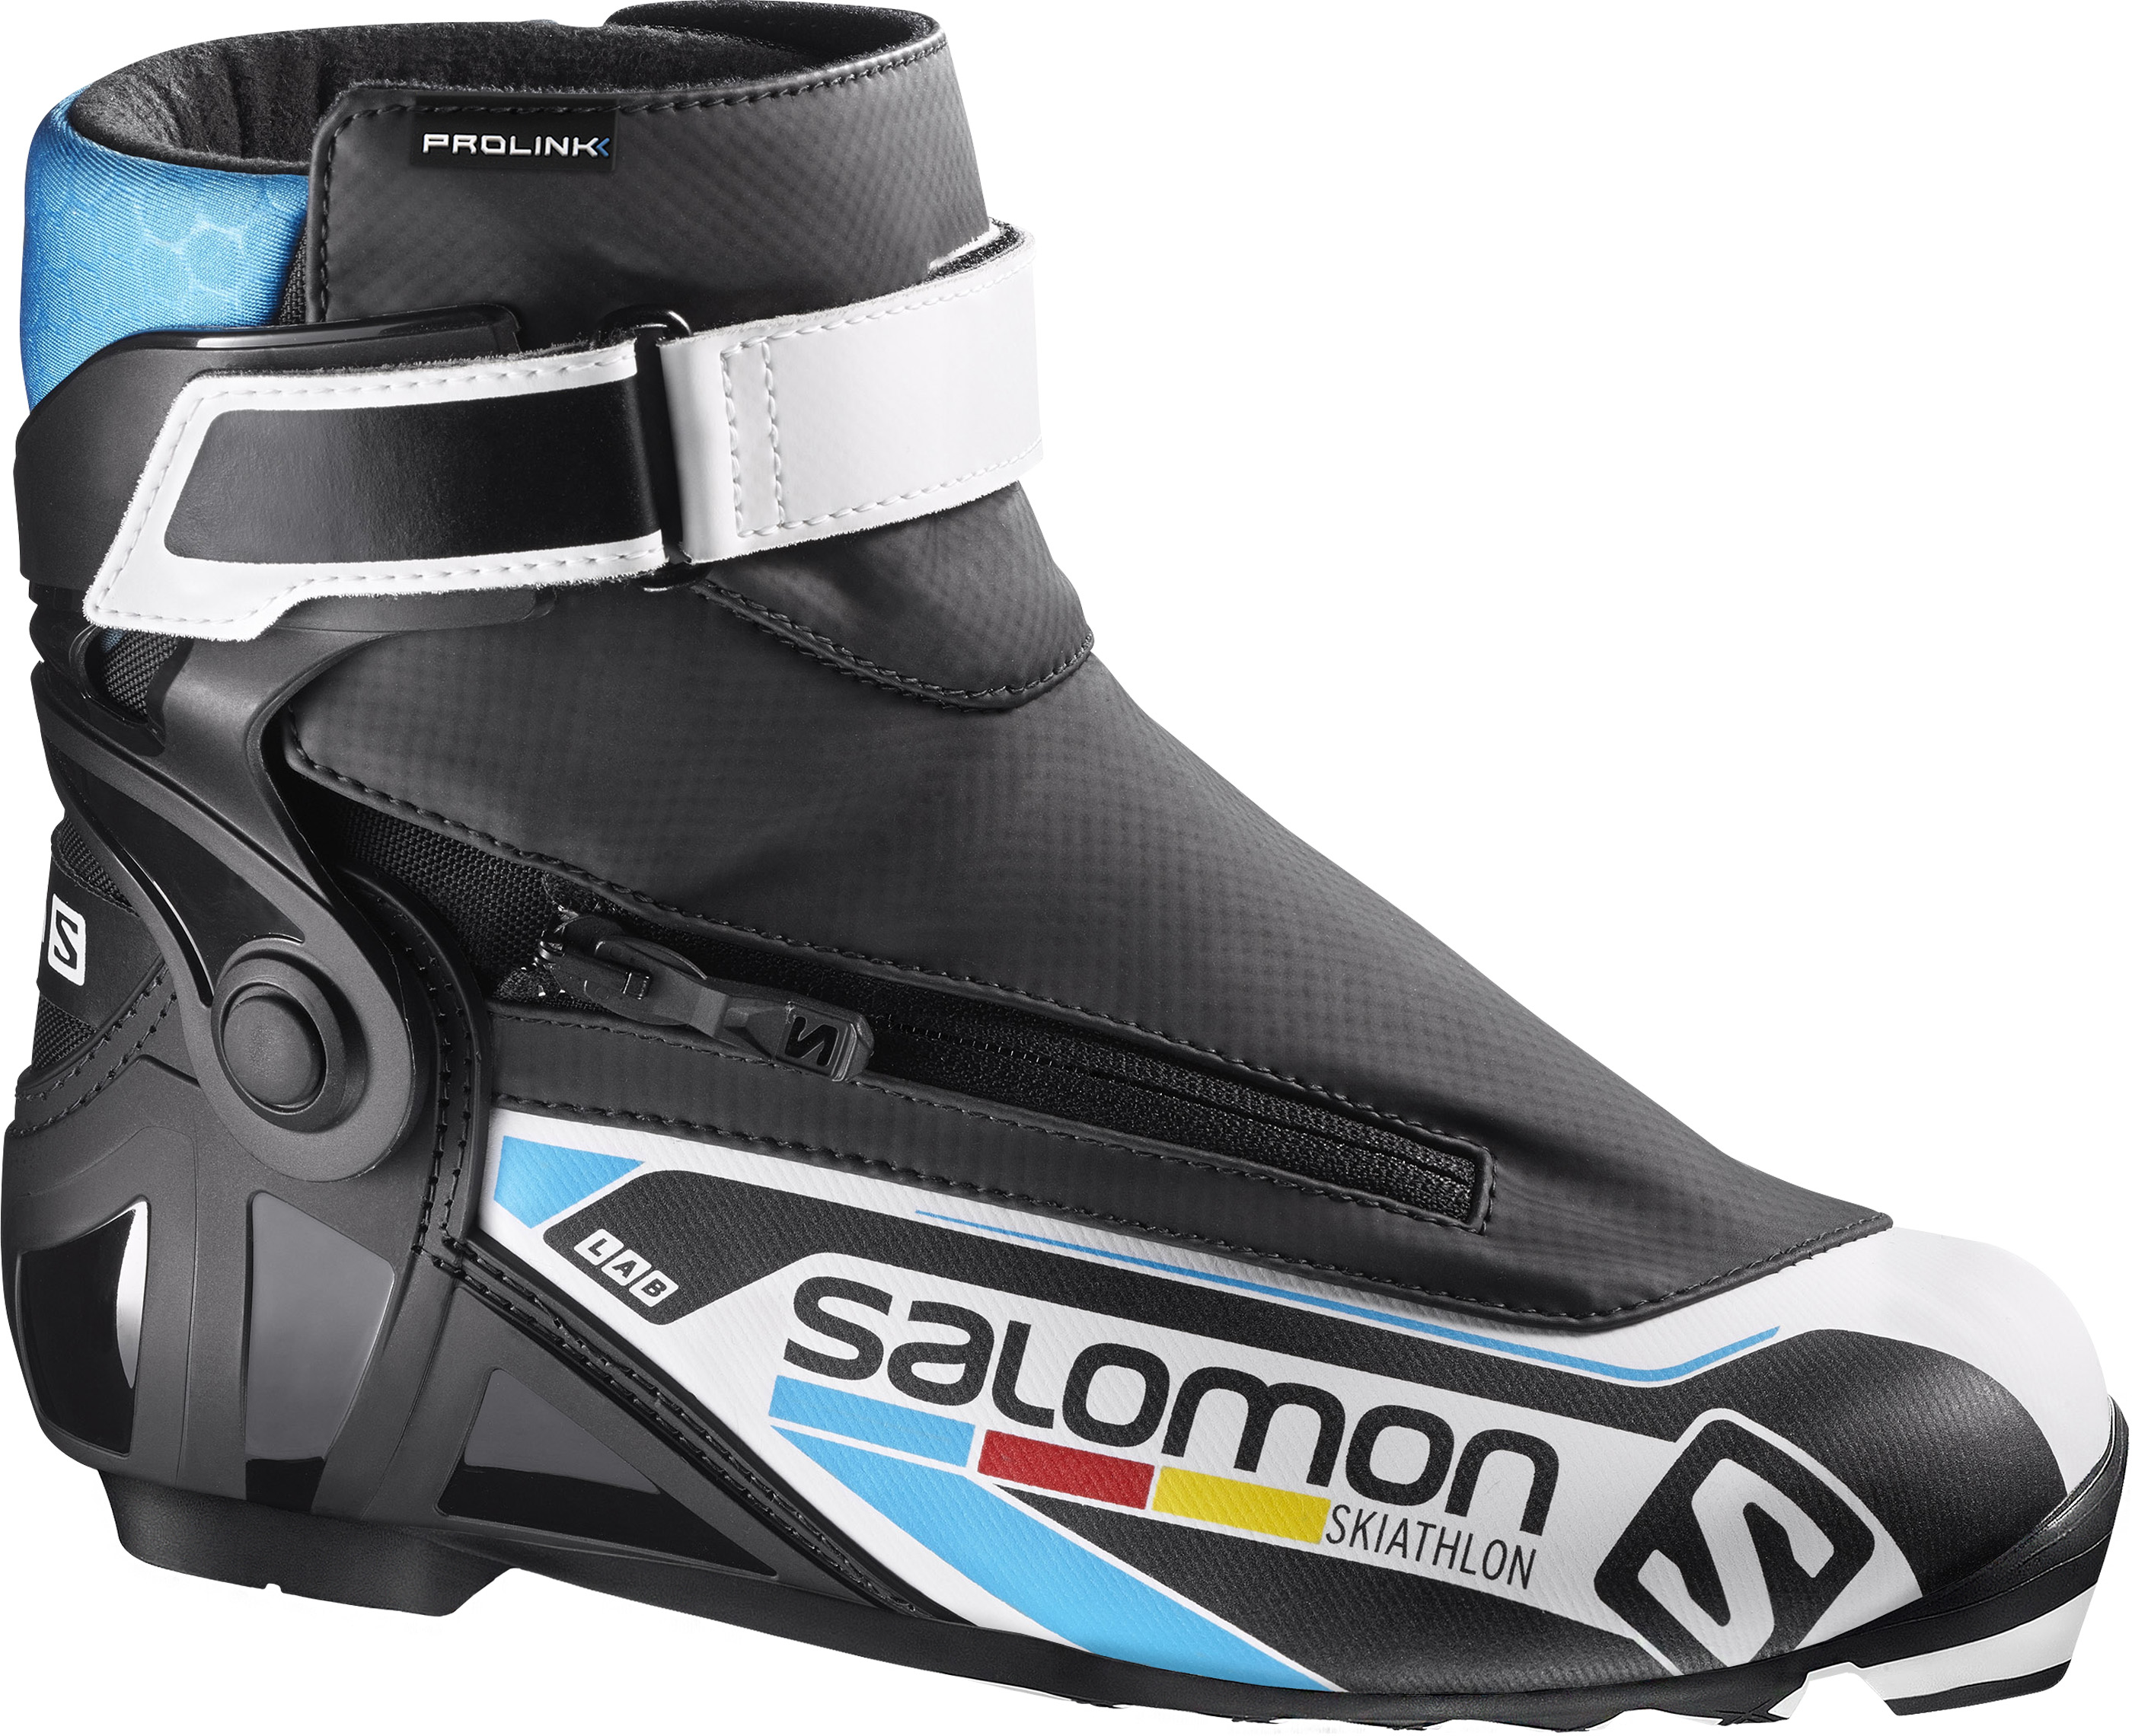 SALOMON SKIATHLON PROLINK 17/18